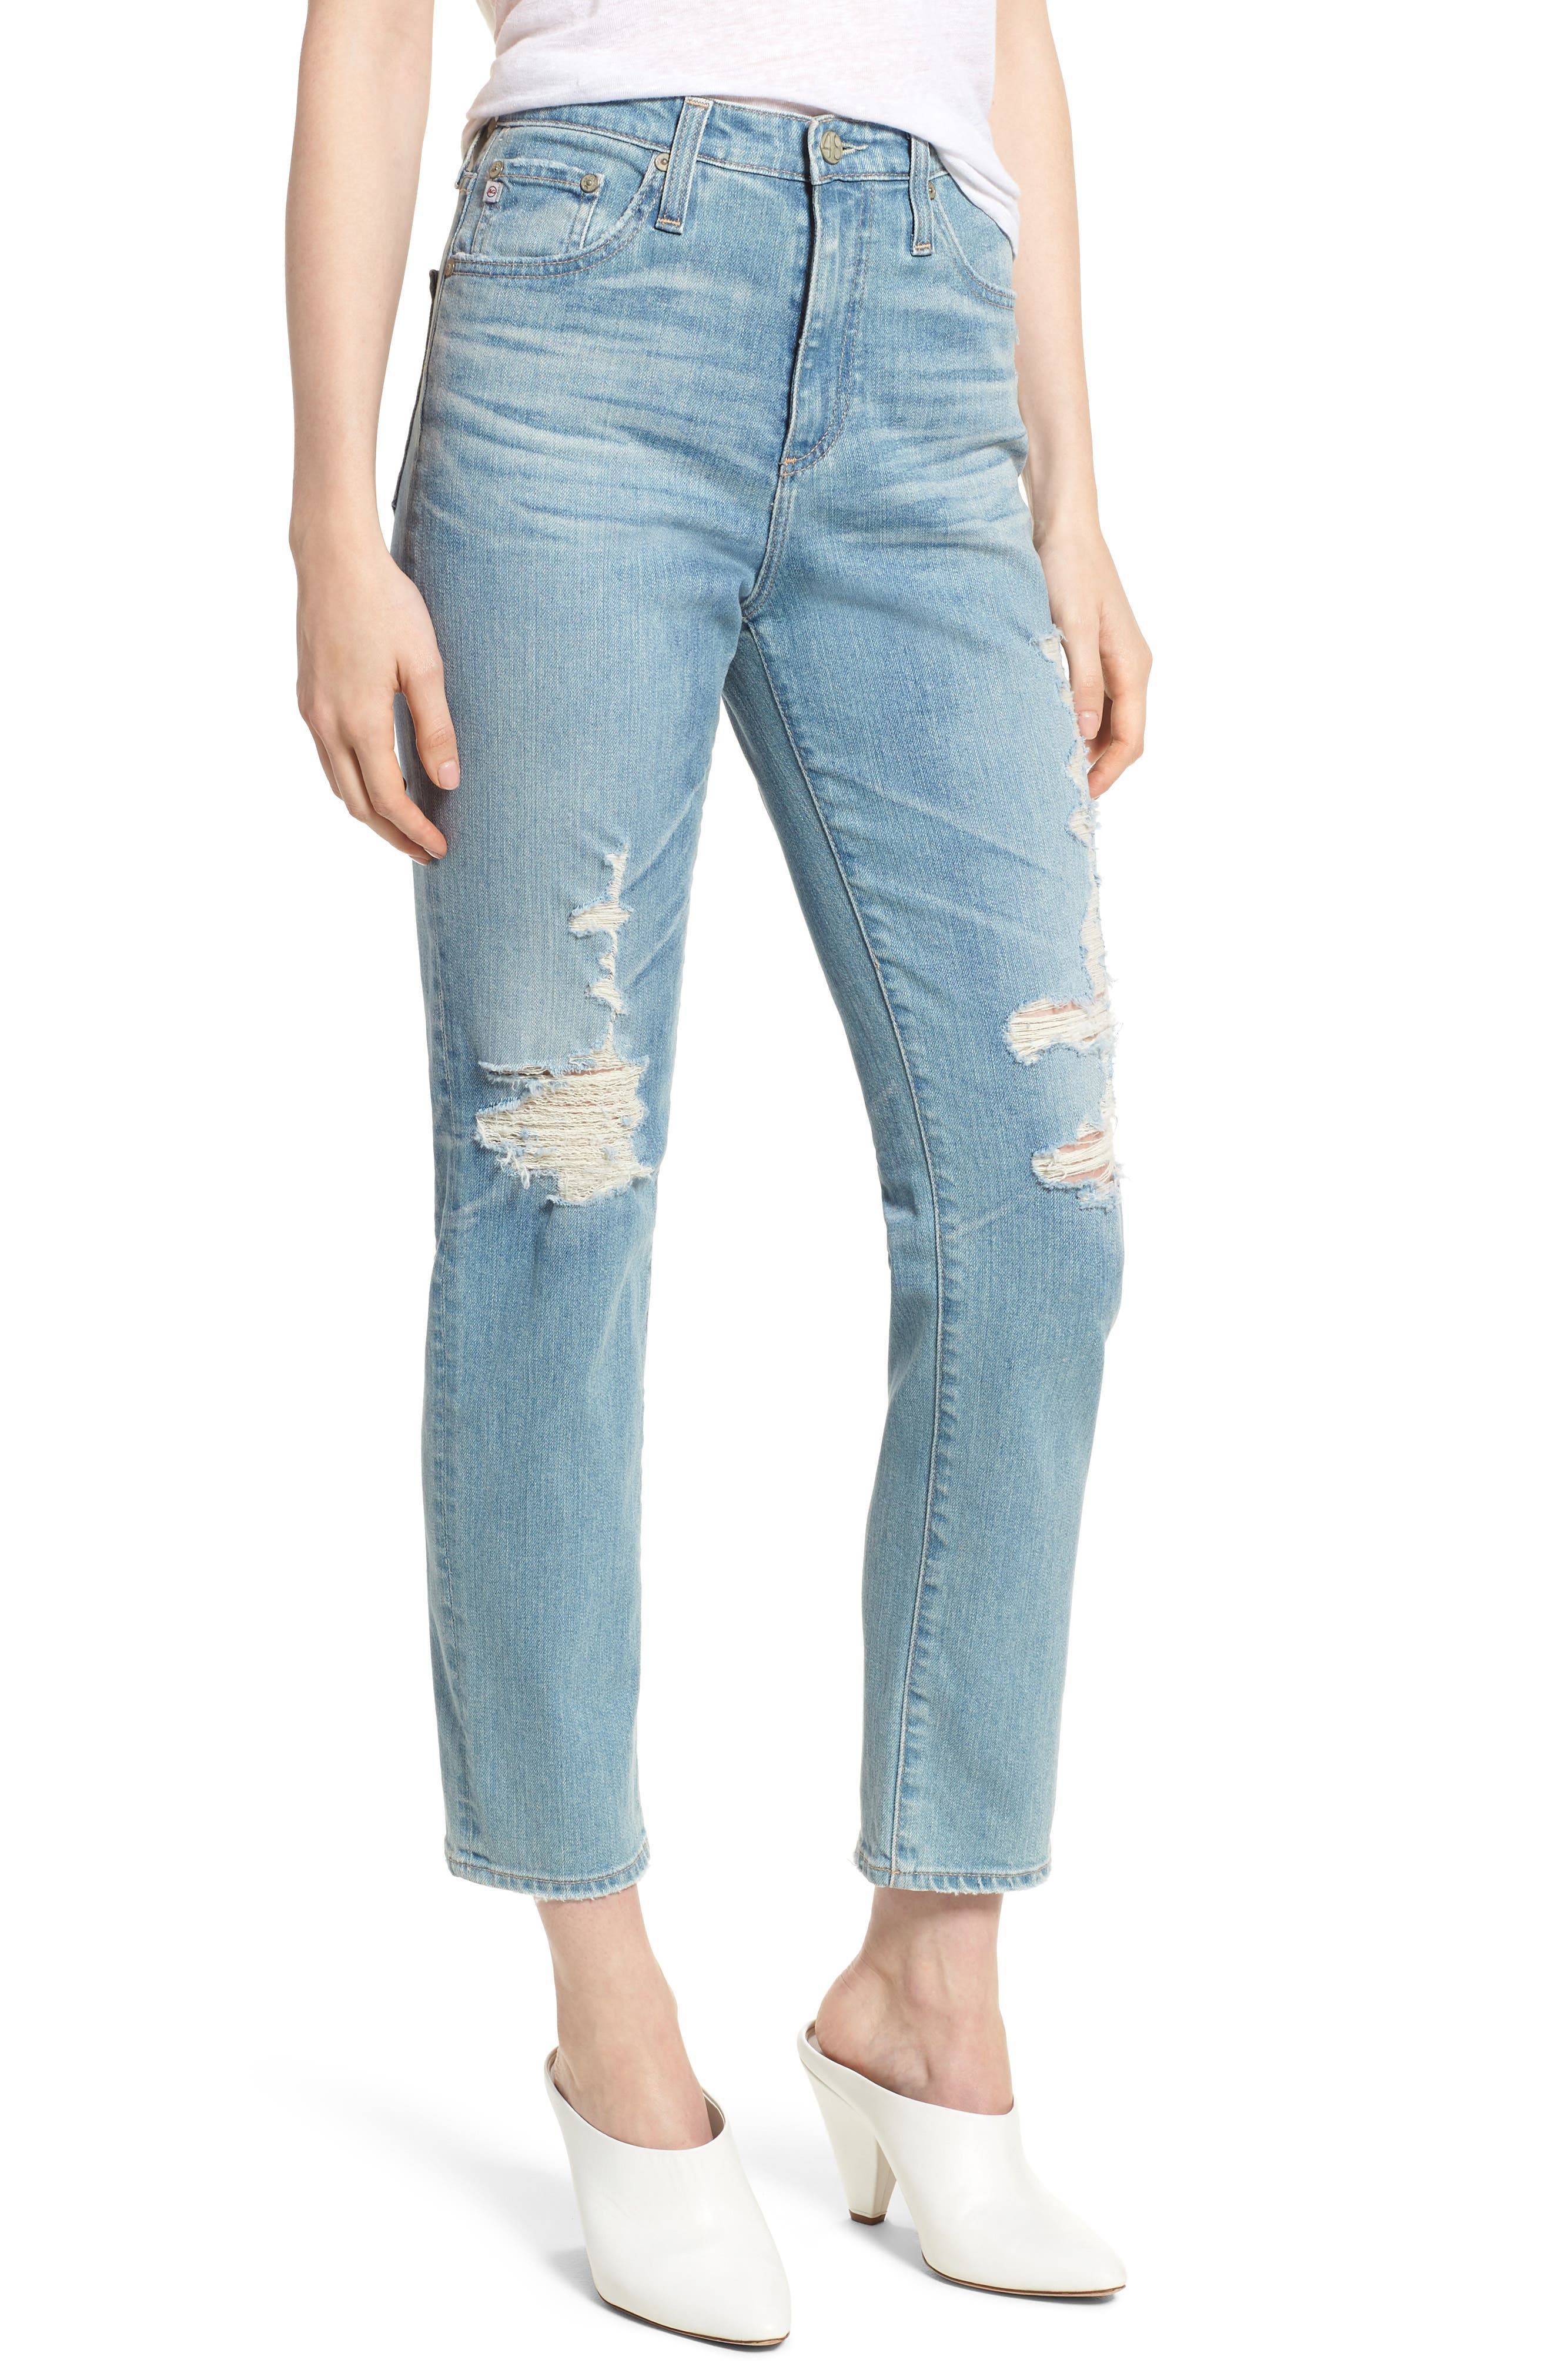 'The Phoebe' Vintage High Rise Straight Leg Jeans,                             Main thumbnail 1, color,                             18 Years Headlands